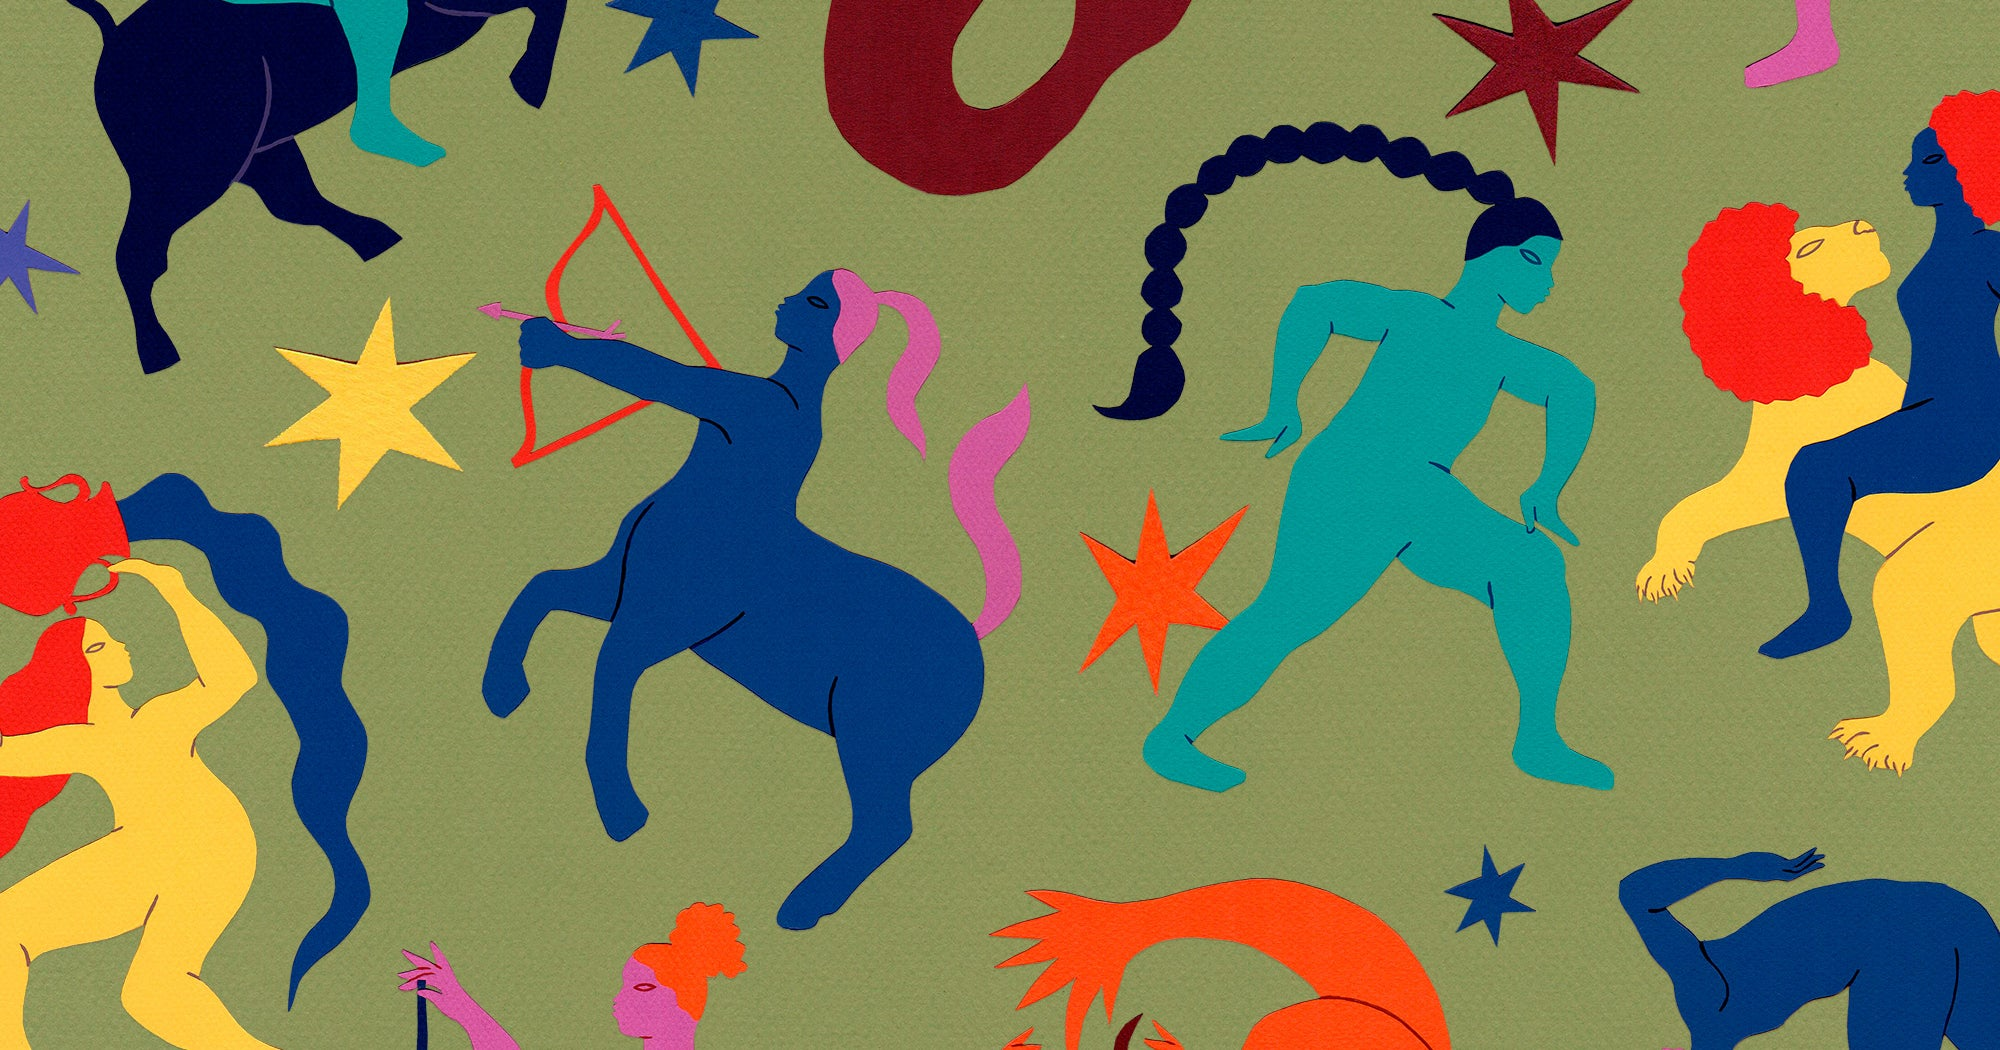 Your 2021 Horoscope Is Here